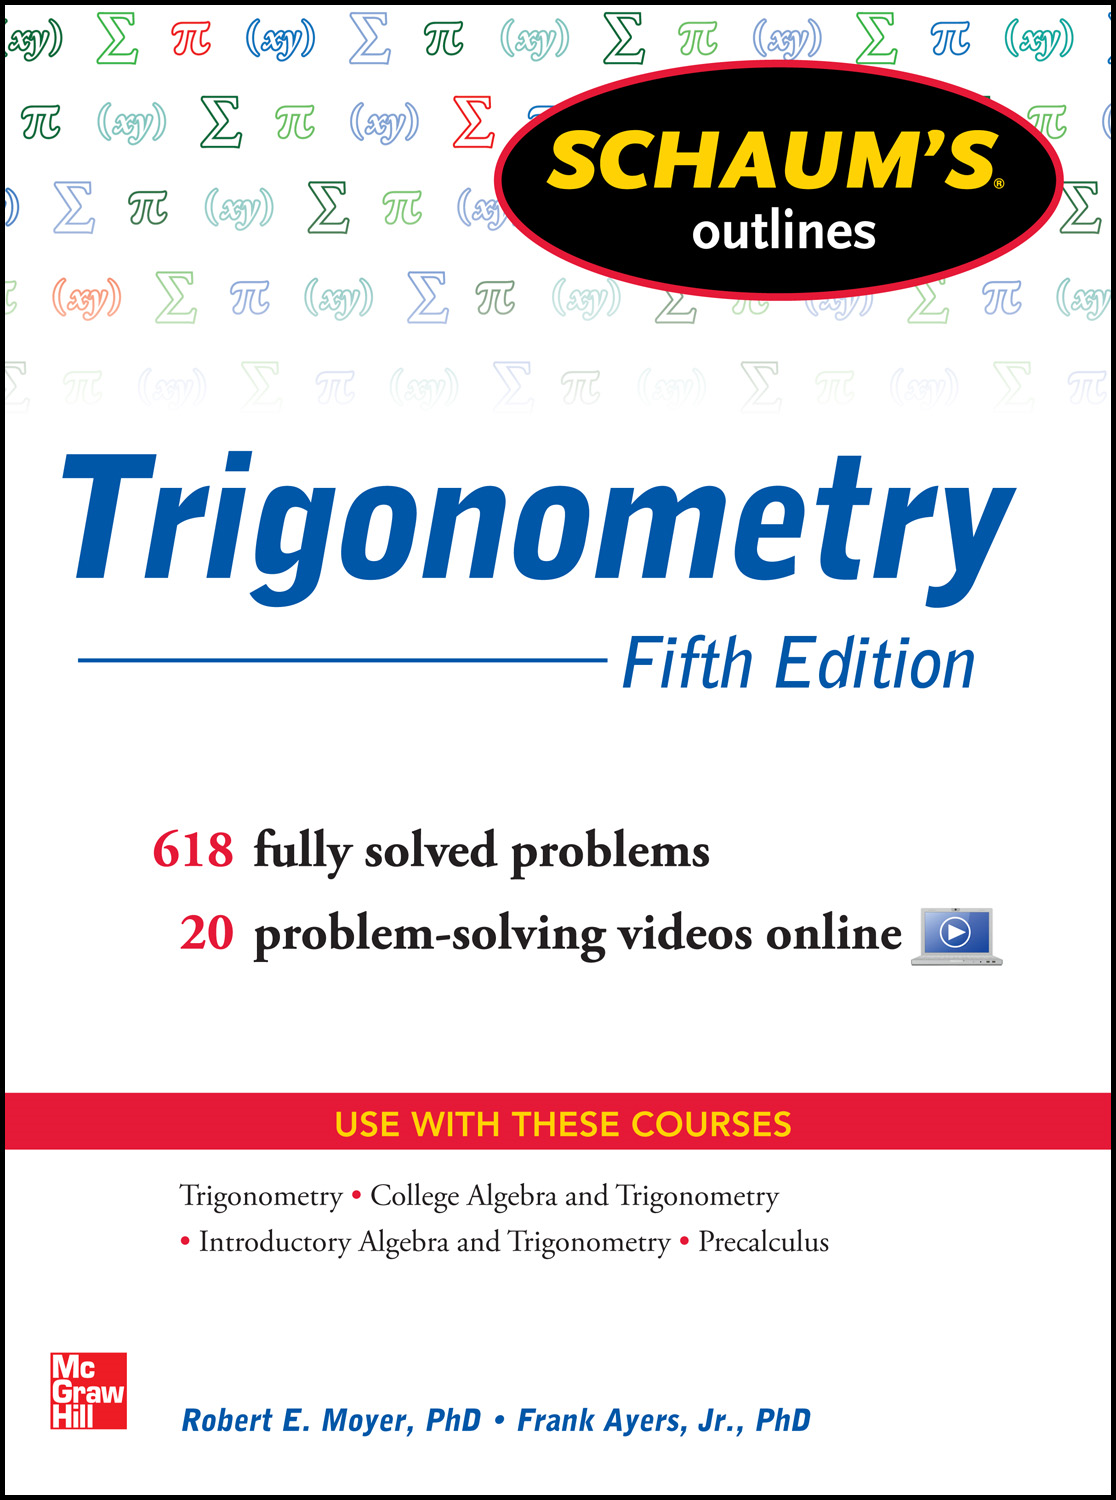 Schaum's Outline of Trigonometry, 5th Edition